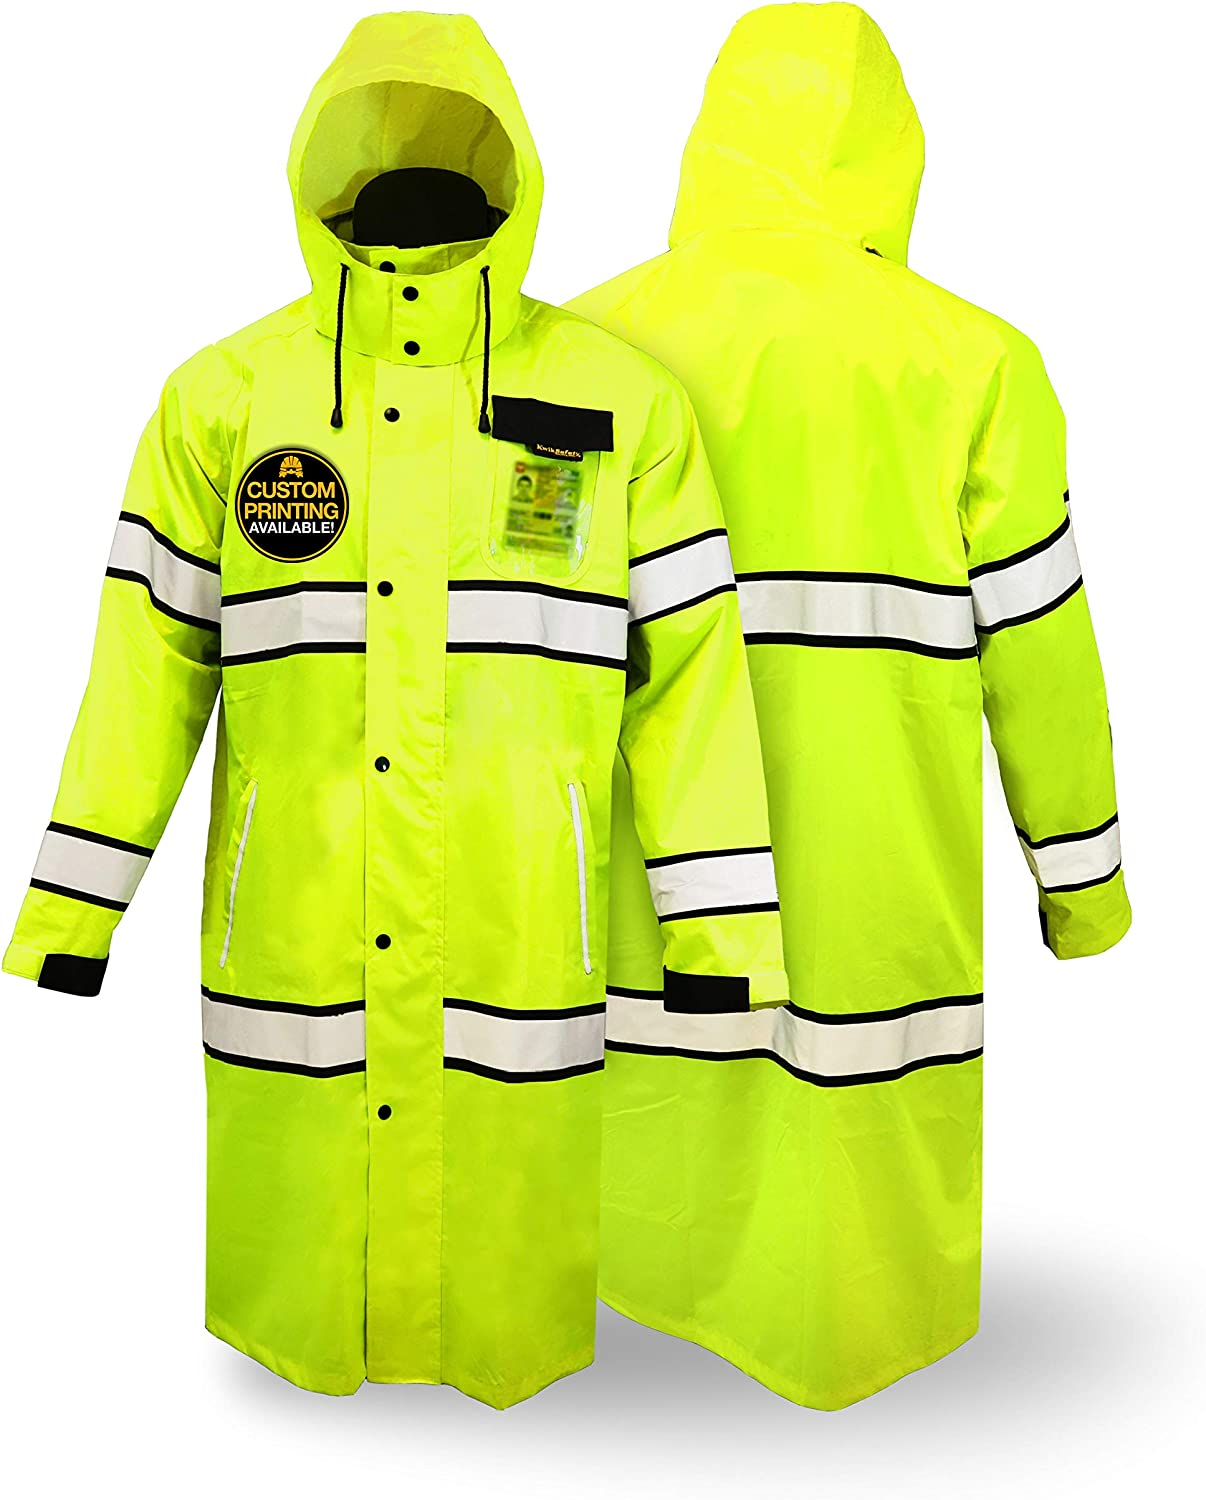 KwikSafety (Charlotte, NC) TORRENT Class 3 Safety Trench Coat | High Visibility Waterproof Windproof Safety Rain Jacket | Hi Vis Reflective ANSI Work Wear | Rain Gear Hideaway Hood Carry Bag | Small - -